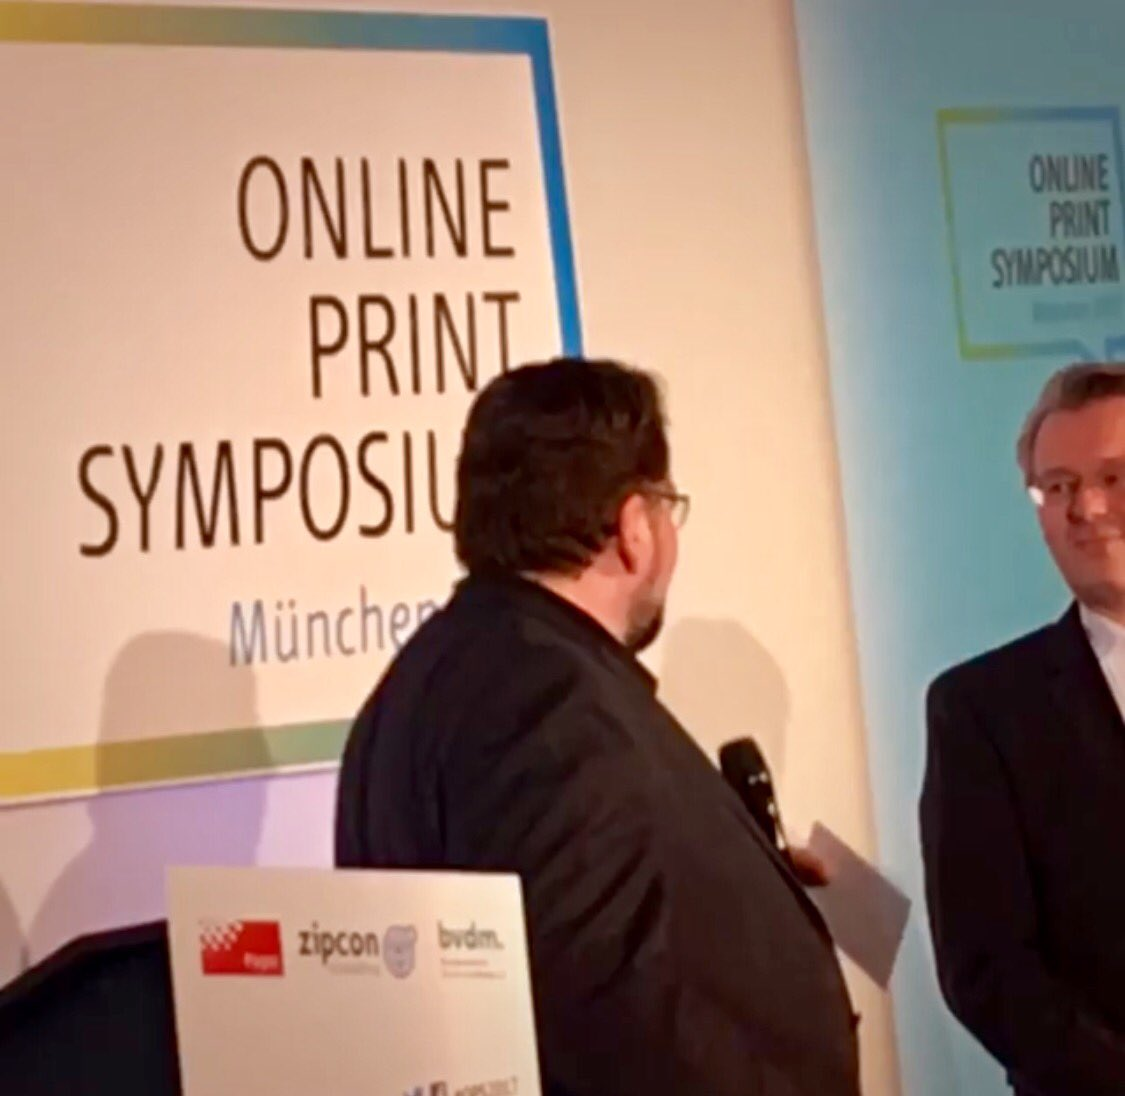 Worldclass Event. Fantastic!Unforgettable. #OPS2017 #TRANSFORMATION #Print #Online #Value #OPS2018 — Watch my #MOVIE https://t.co/aALfJIIvQr https://t.co/u2Yb6ugphP